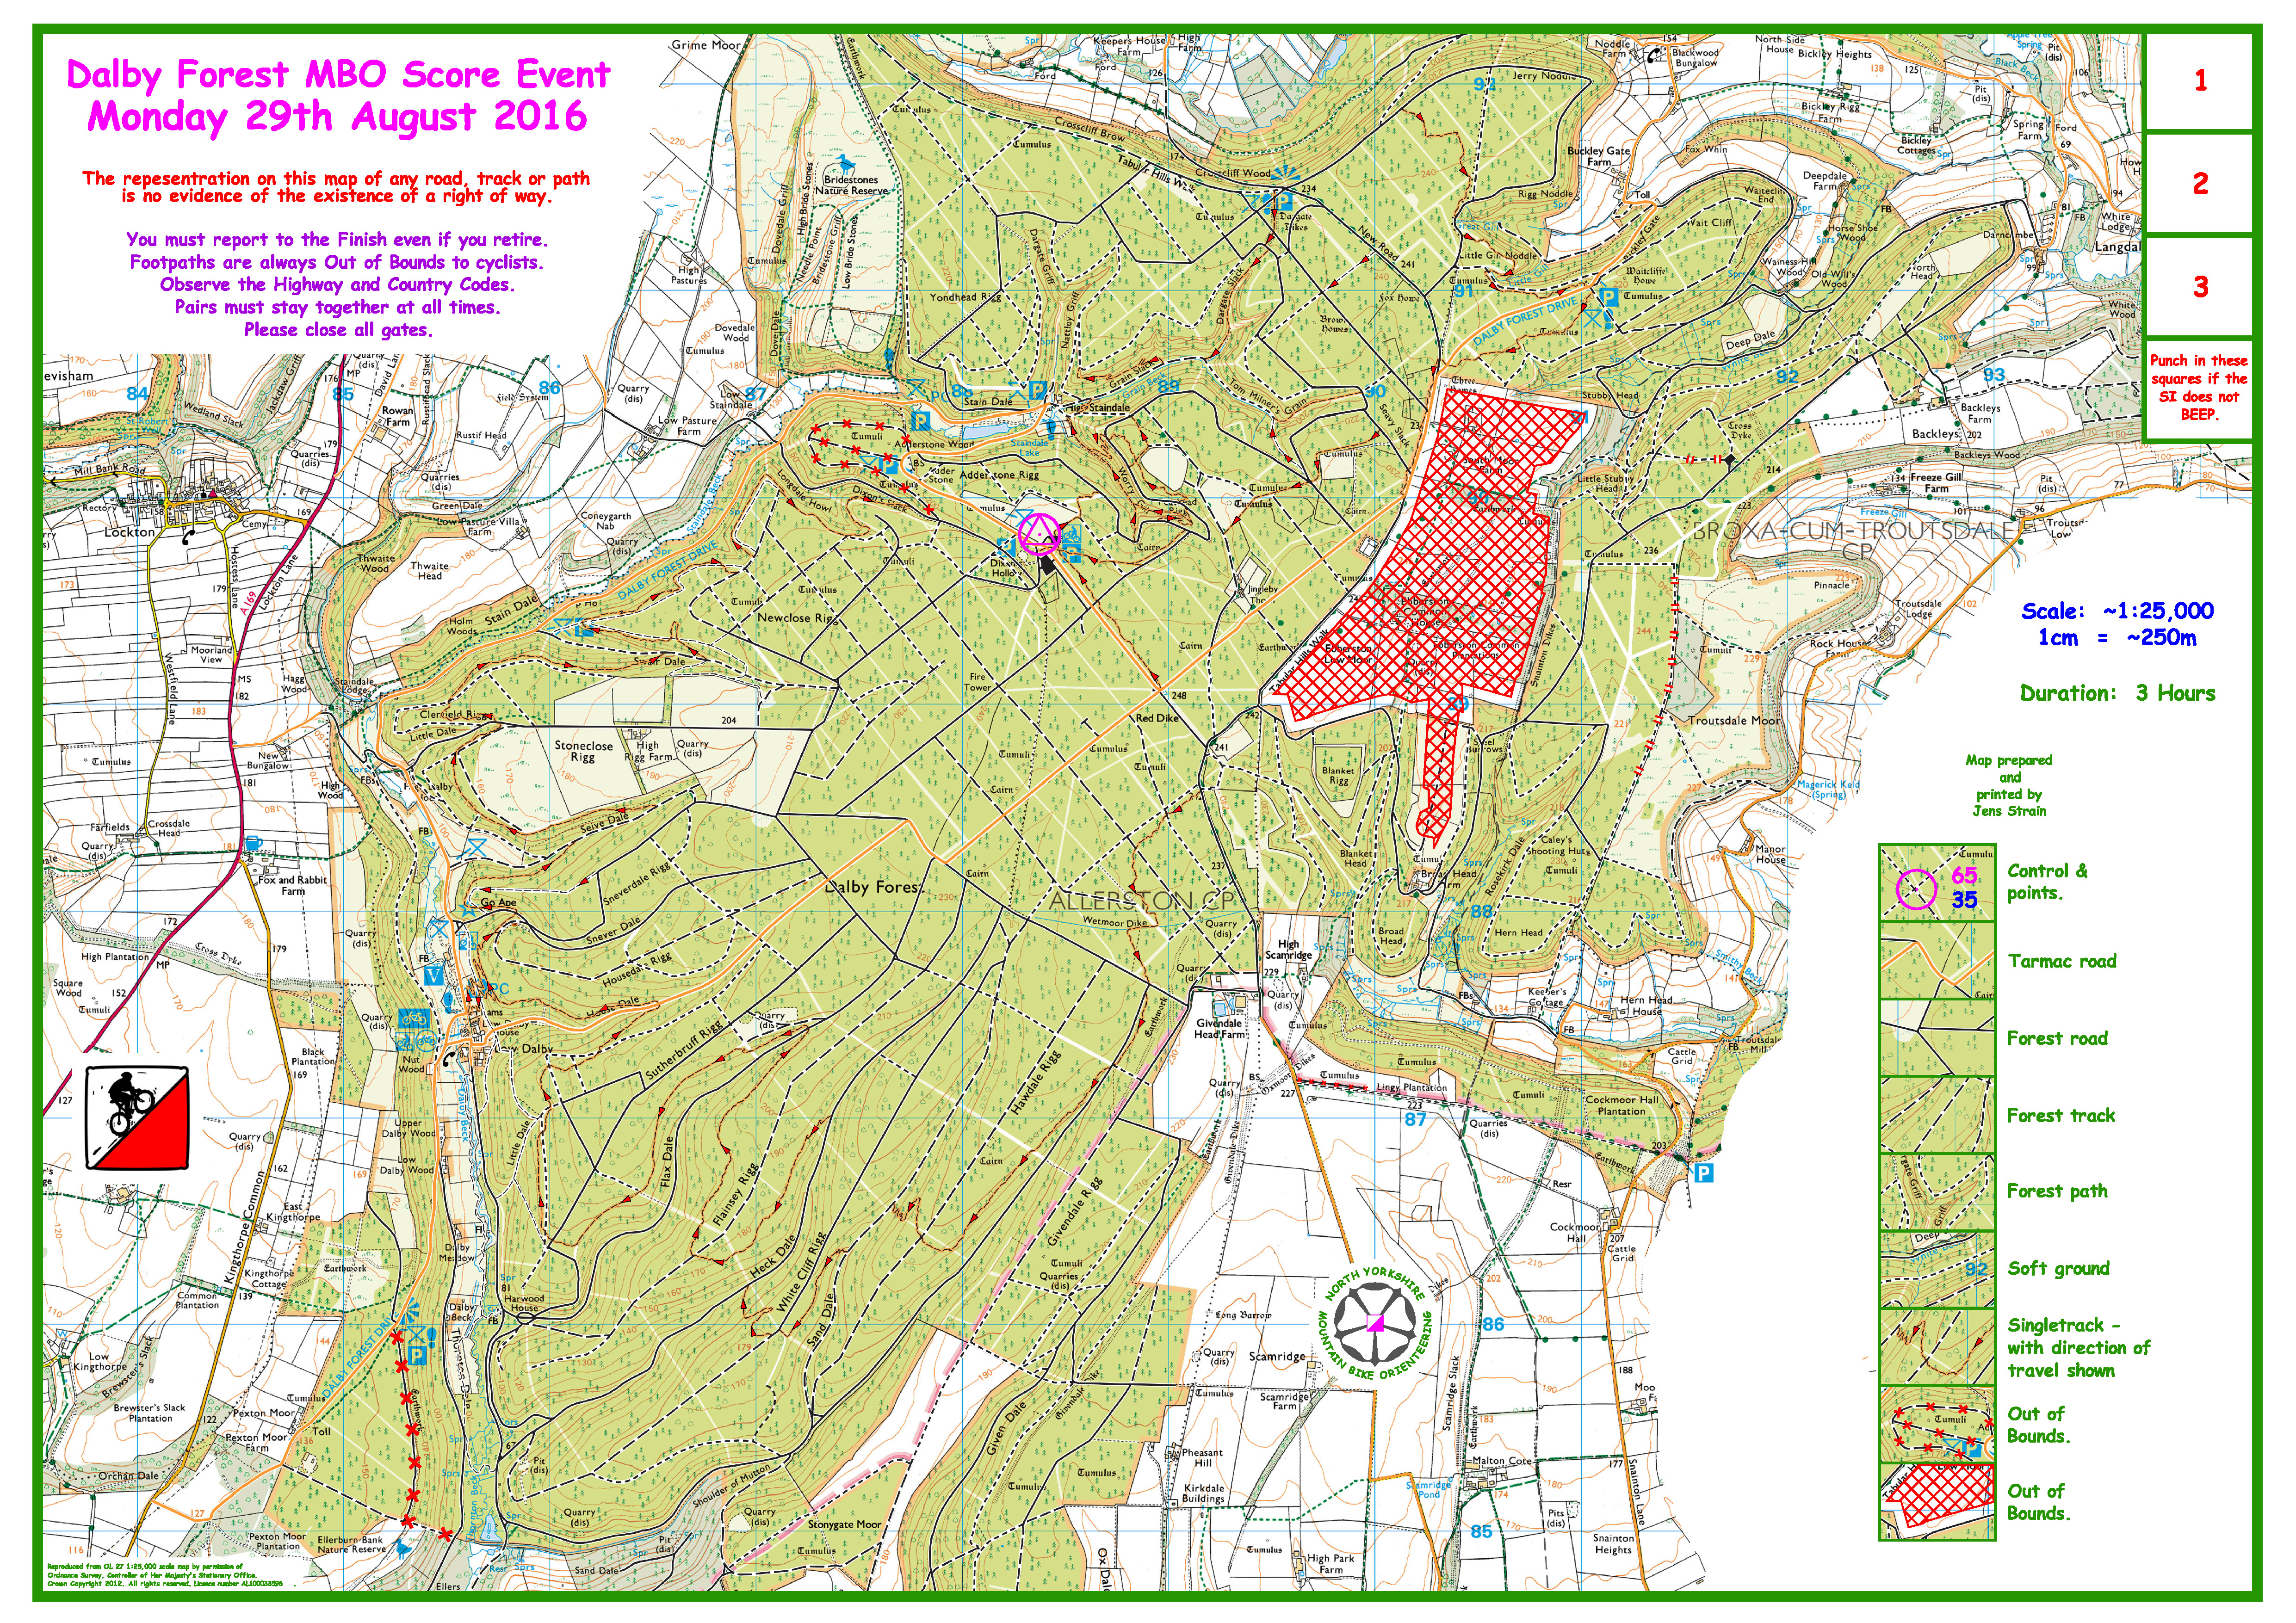 Dalby Forest Map Dalby Forest blank map now available | Event Monday 29 August  Dalby Forest Map